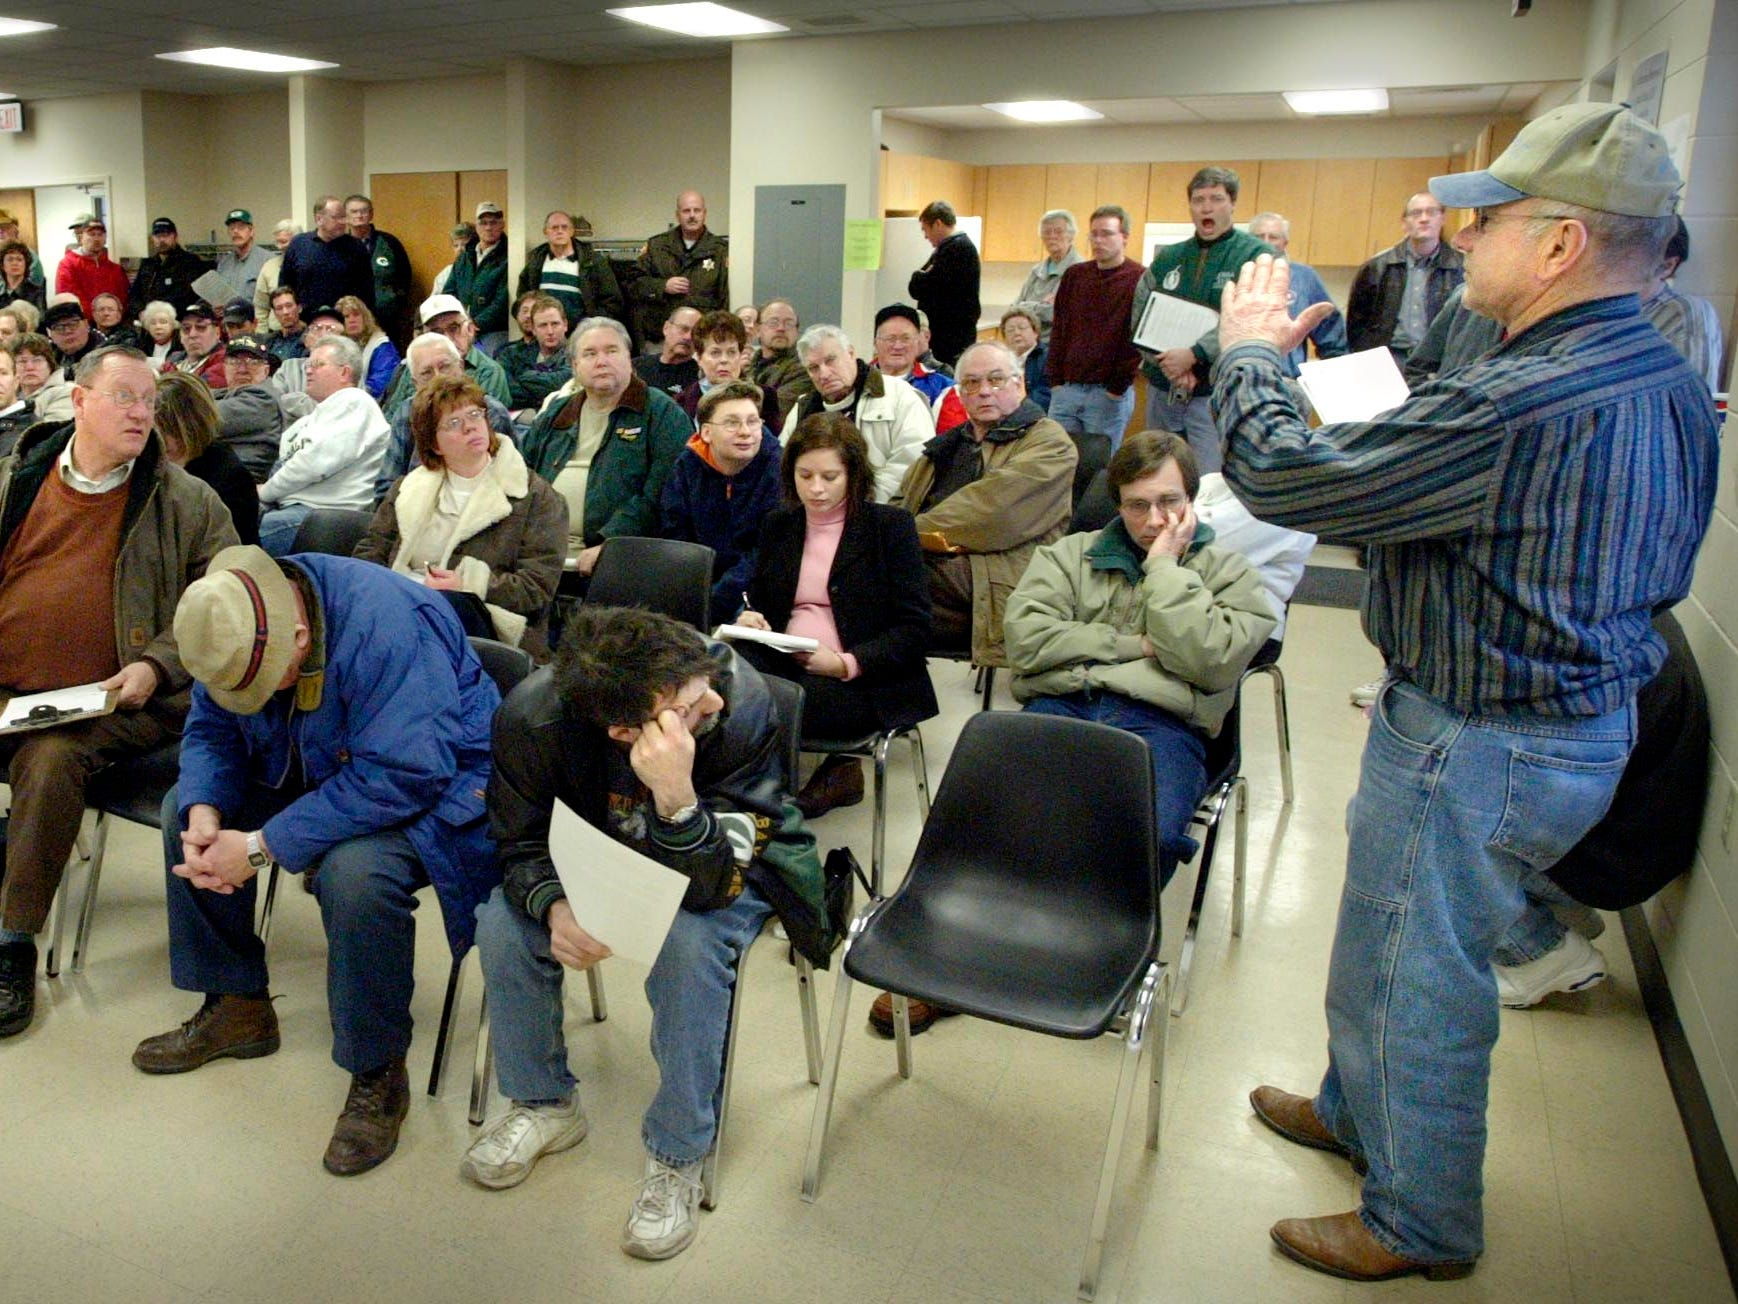 Farmer Merlin Limberg, right, expresses his concerns Wednesday about the expansion of state Highway 23 during a DOT public hearing January 5, 2005, at the Greenbush, Wis. Village Hall.